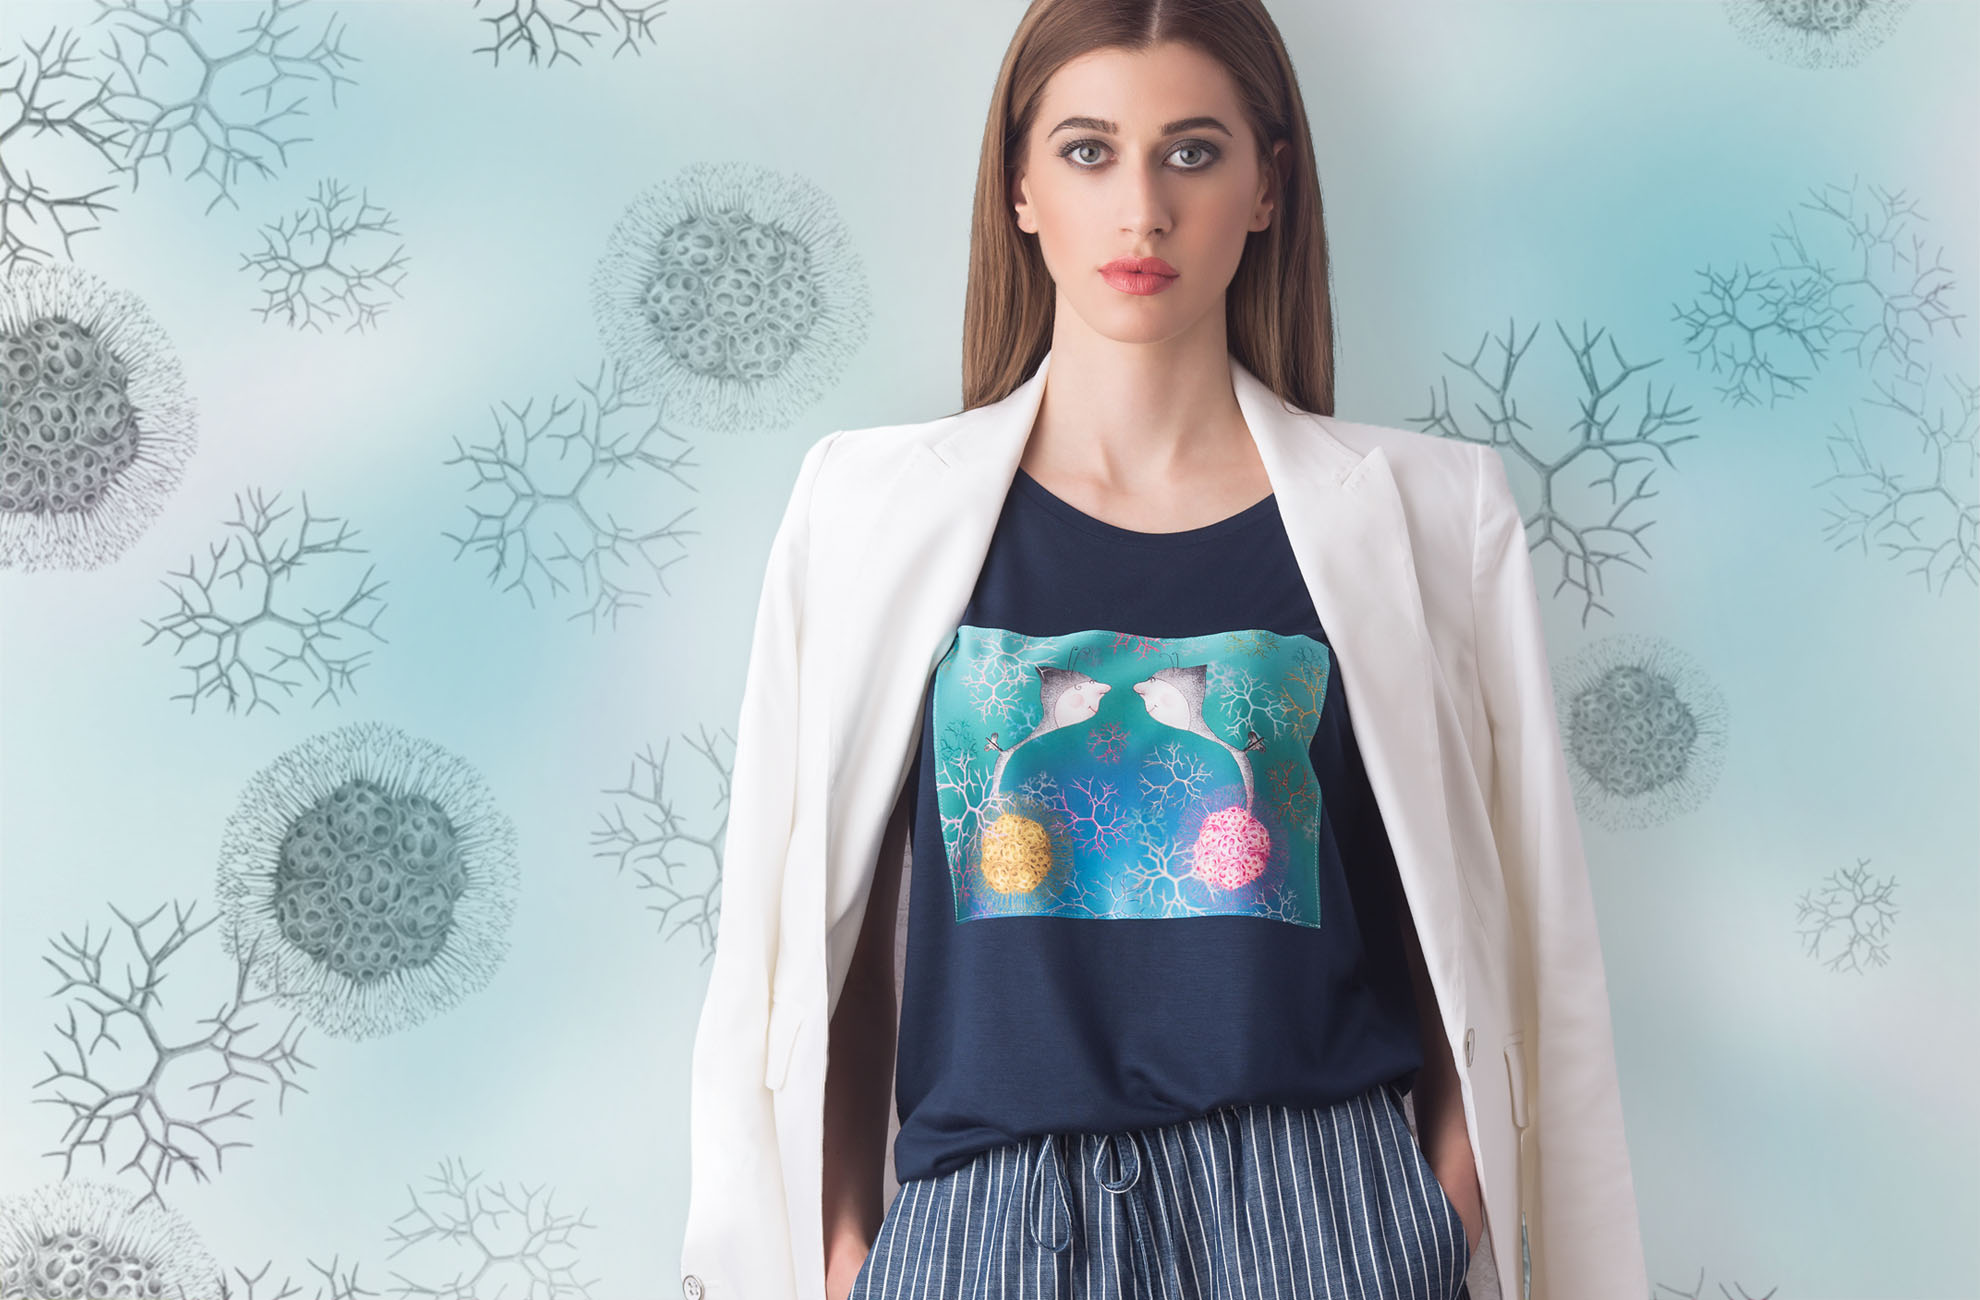 Marabeca Love Molecules Navy tShirt